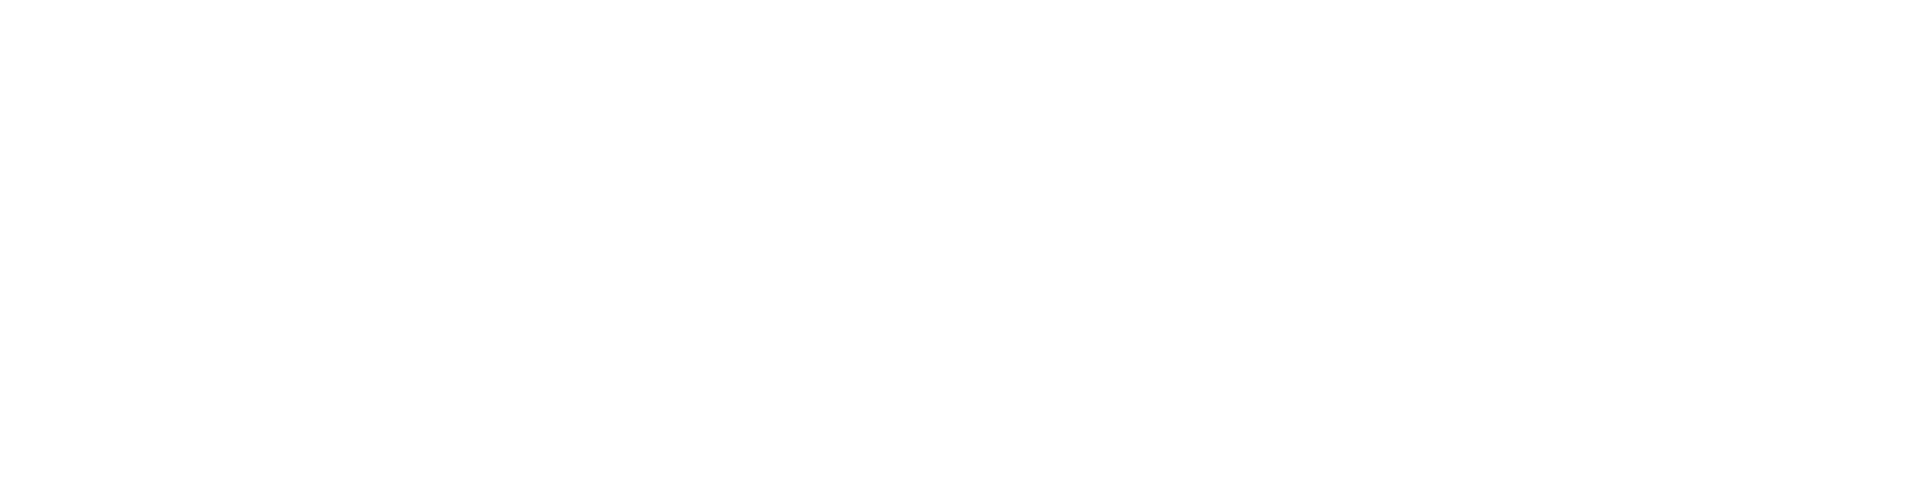 Sectors - We also excel in healthcare, retail, corporate communications, education and leisure